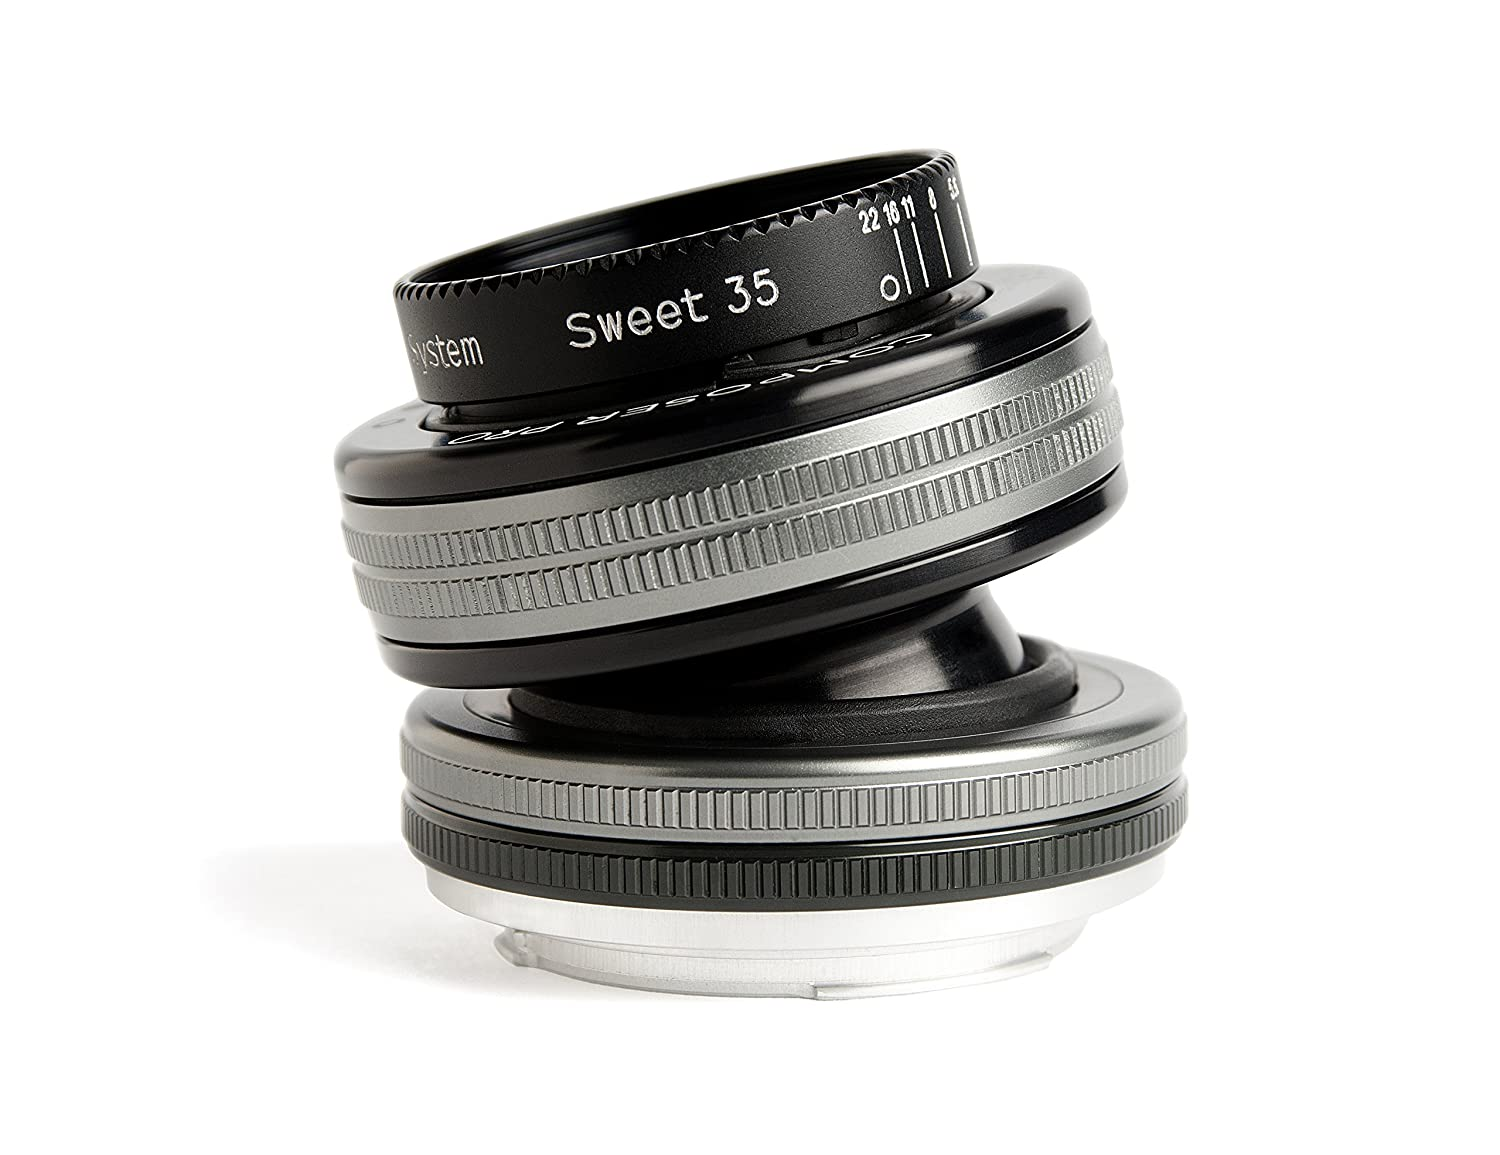 Composer Pro II with Sweet 35 Optic for Micro 4/3 [並行輸入品]   B01L4TBJJ6